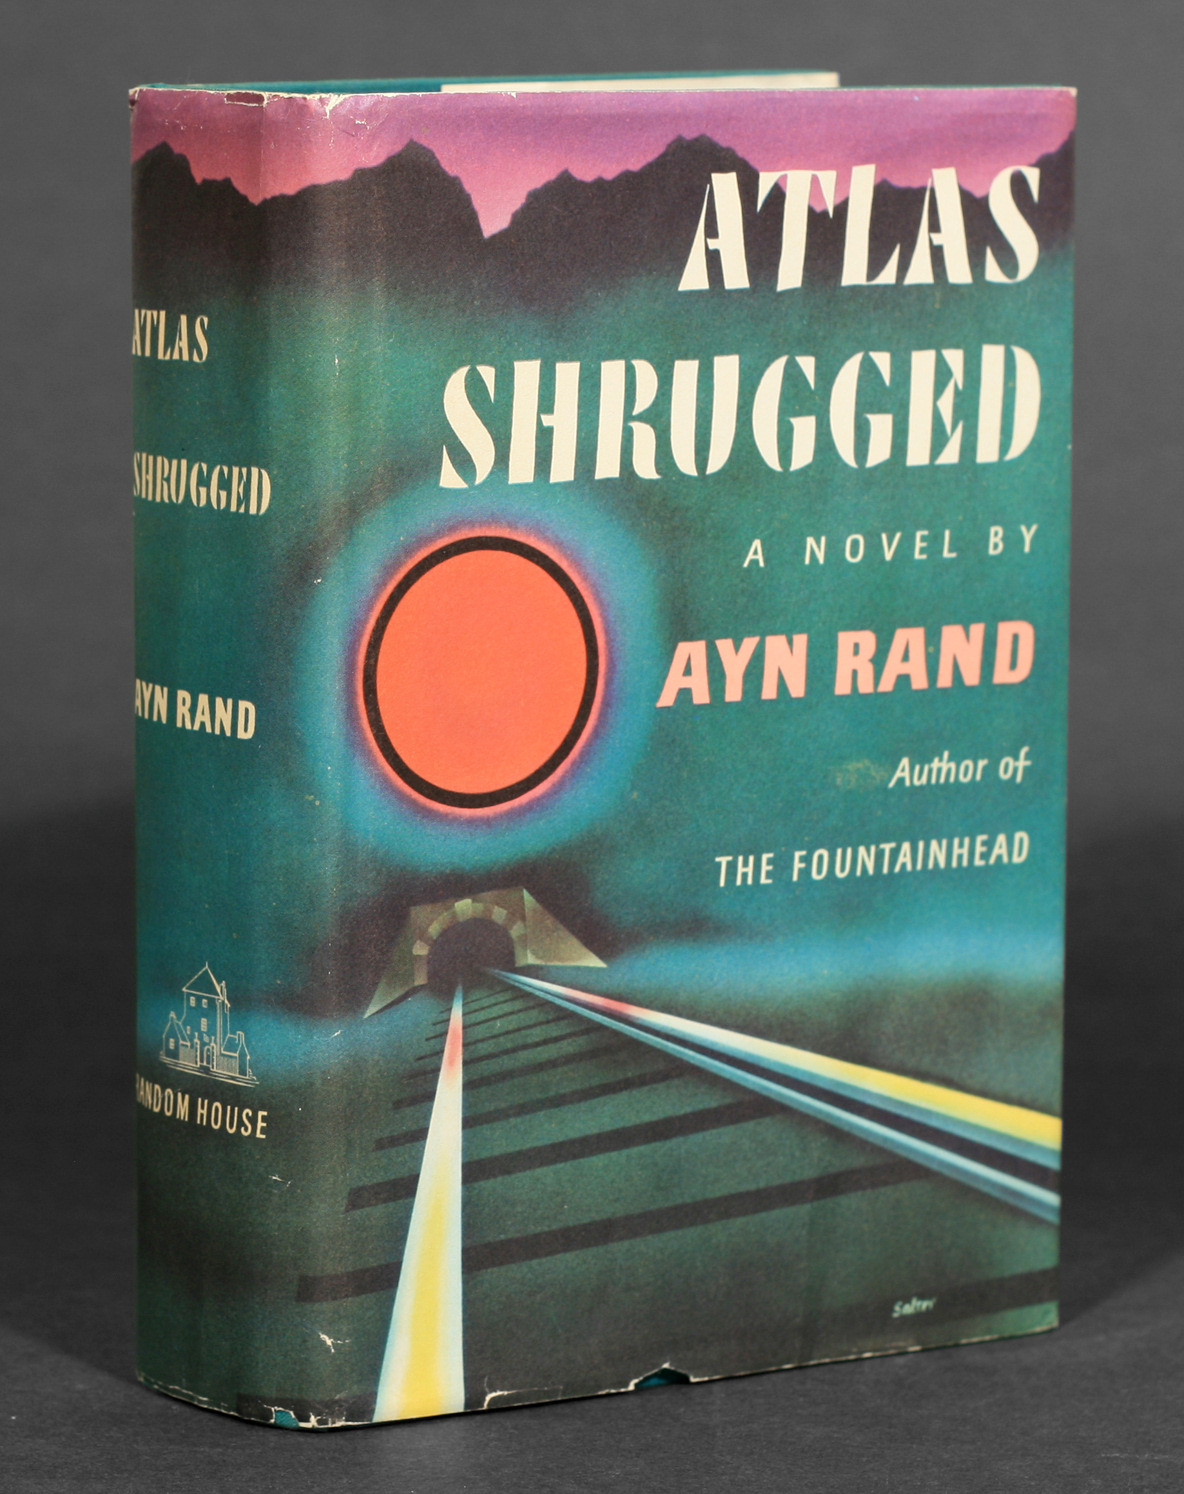 rand-atlas-shrugged-2091.jpg